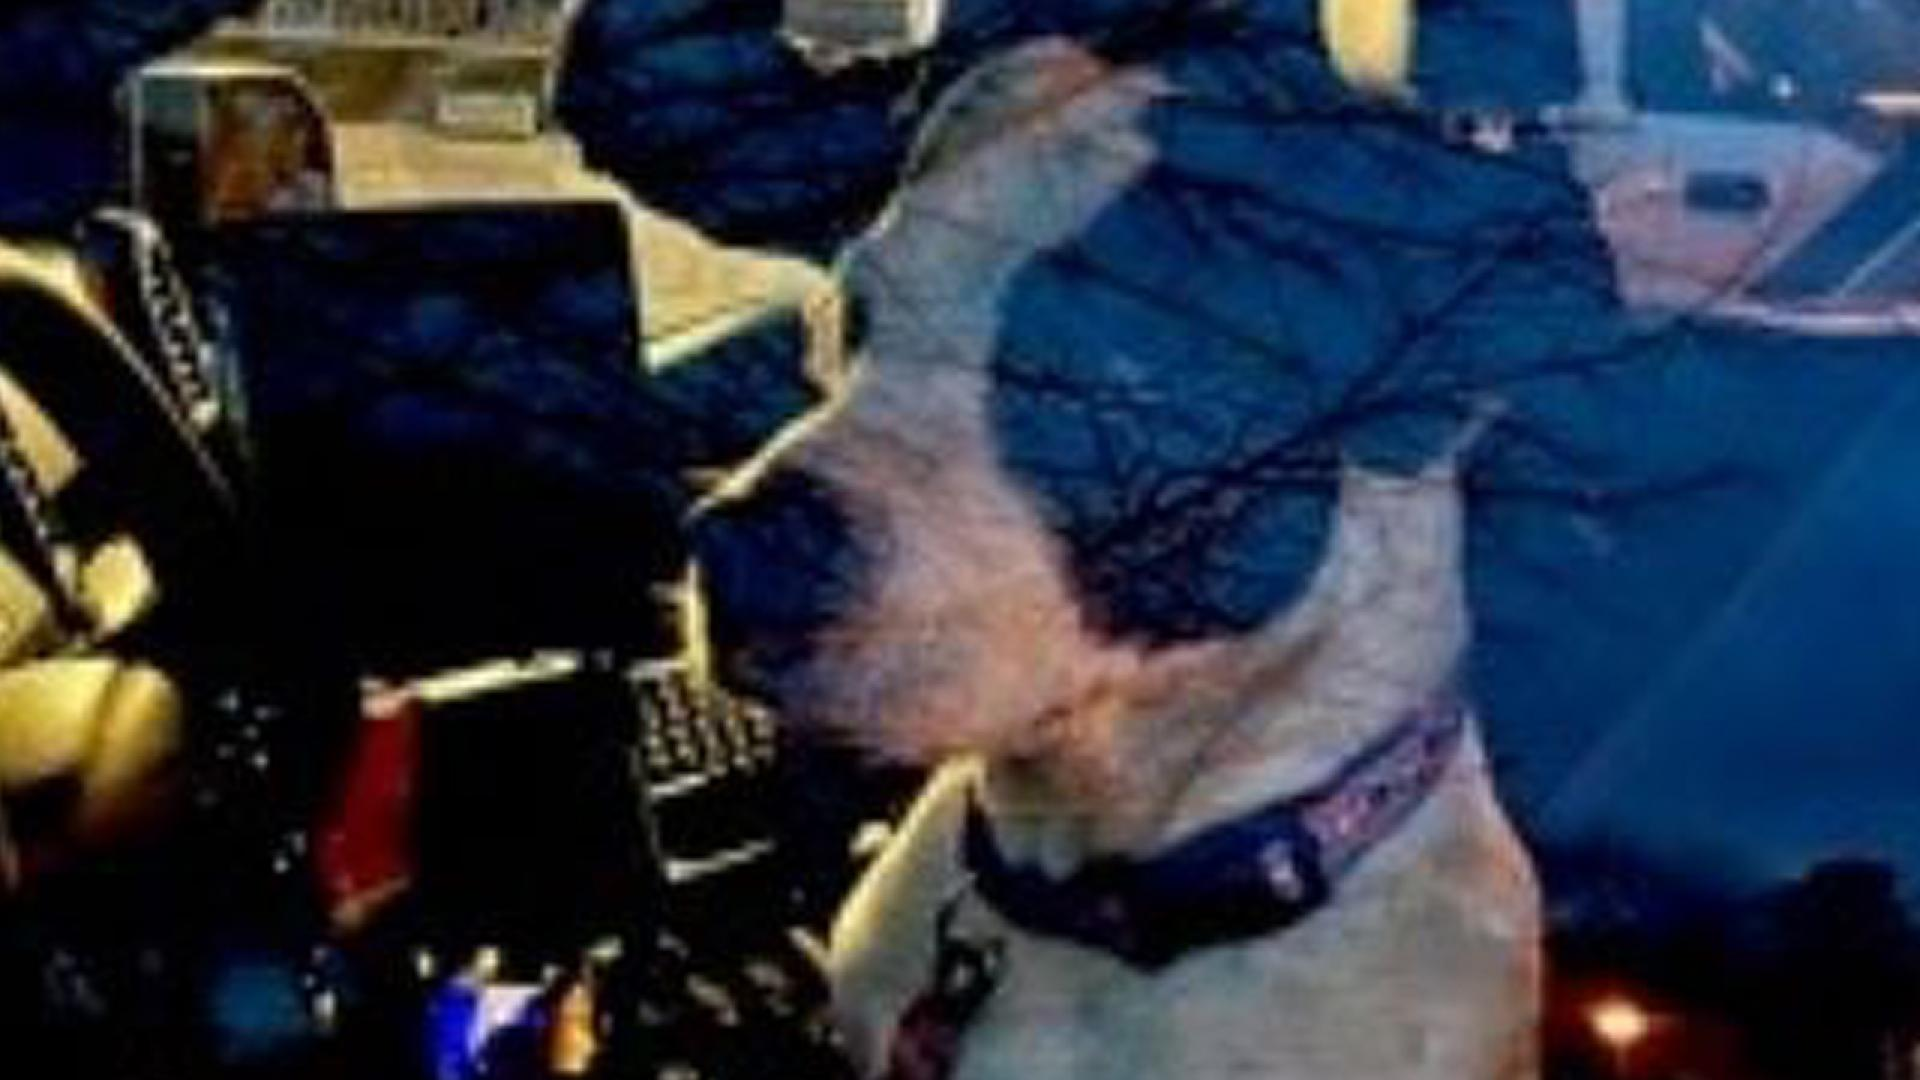 Fred Rapp's dog helped lead an off-duty cop to where his owner was